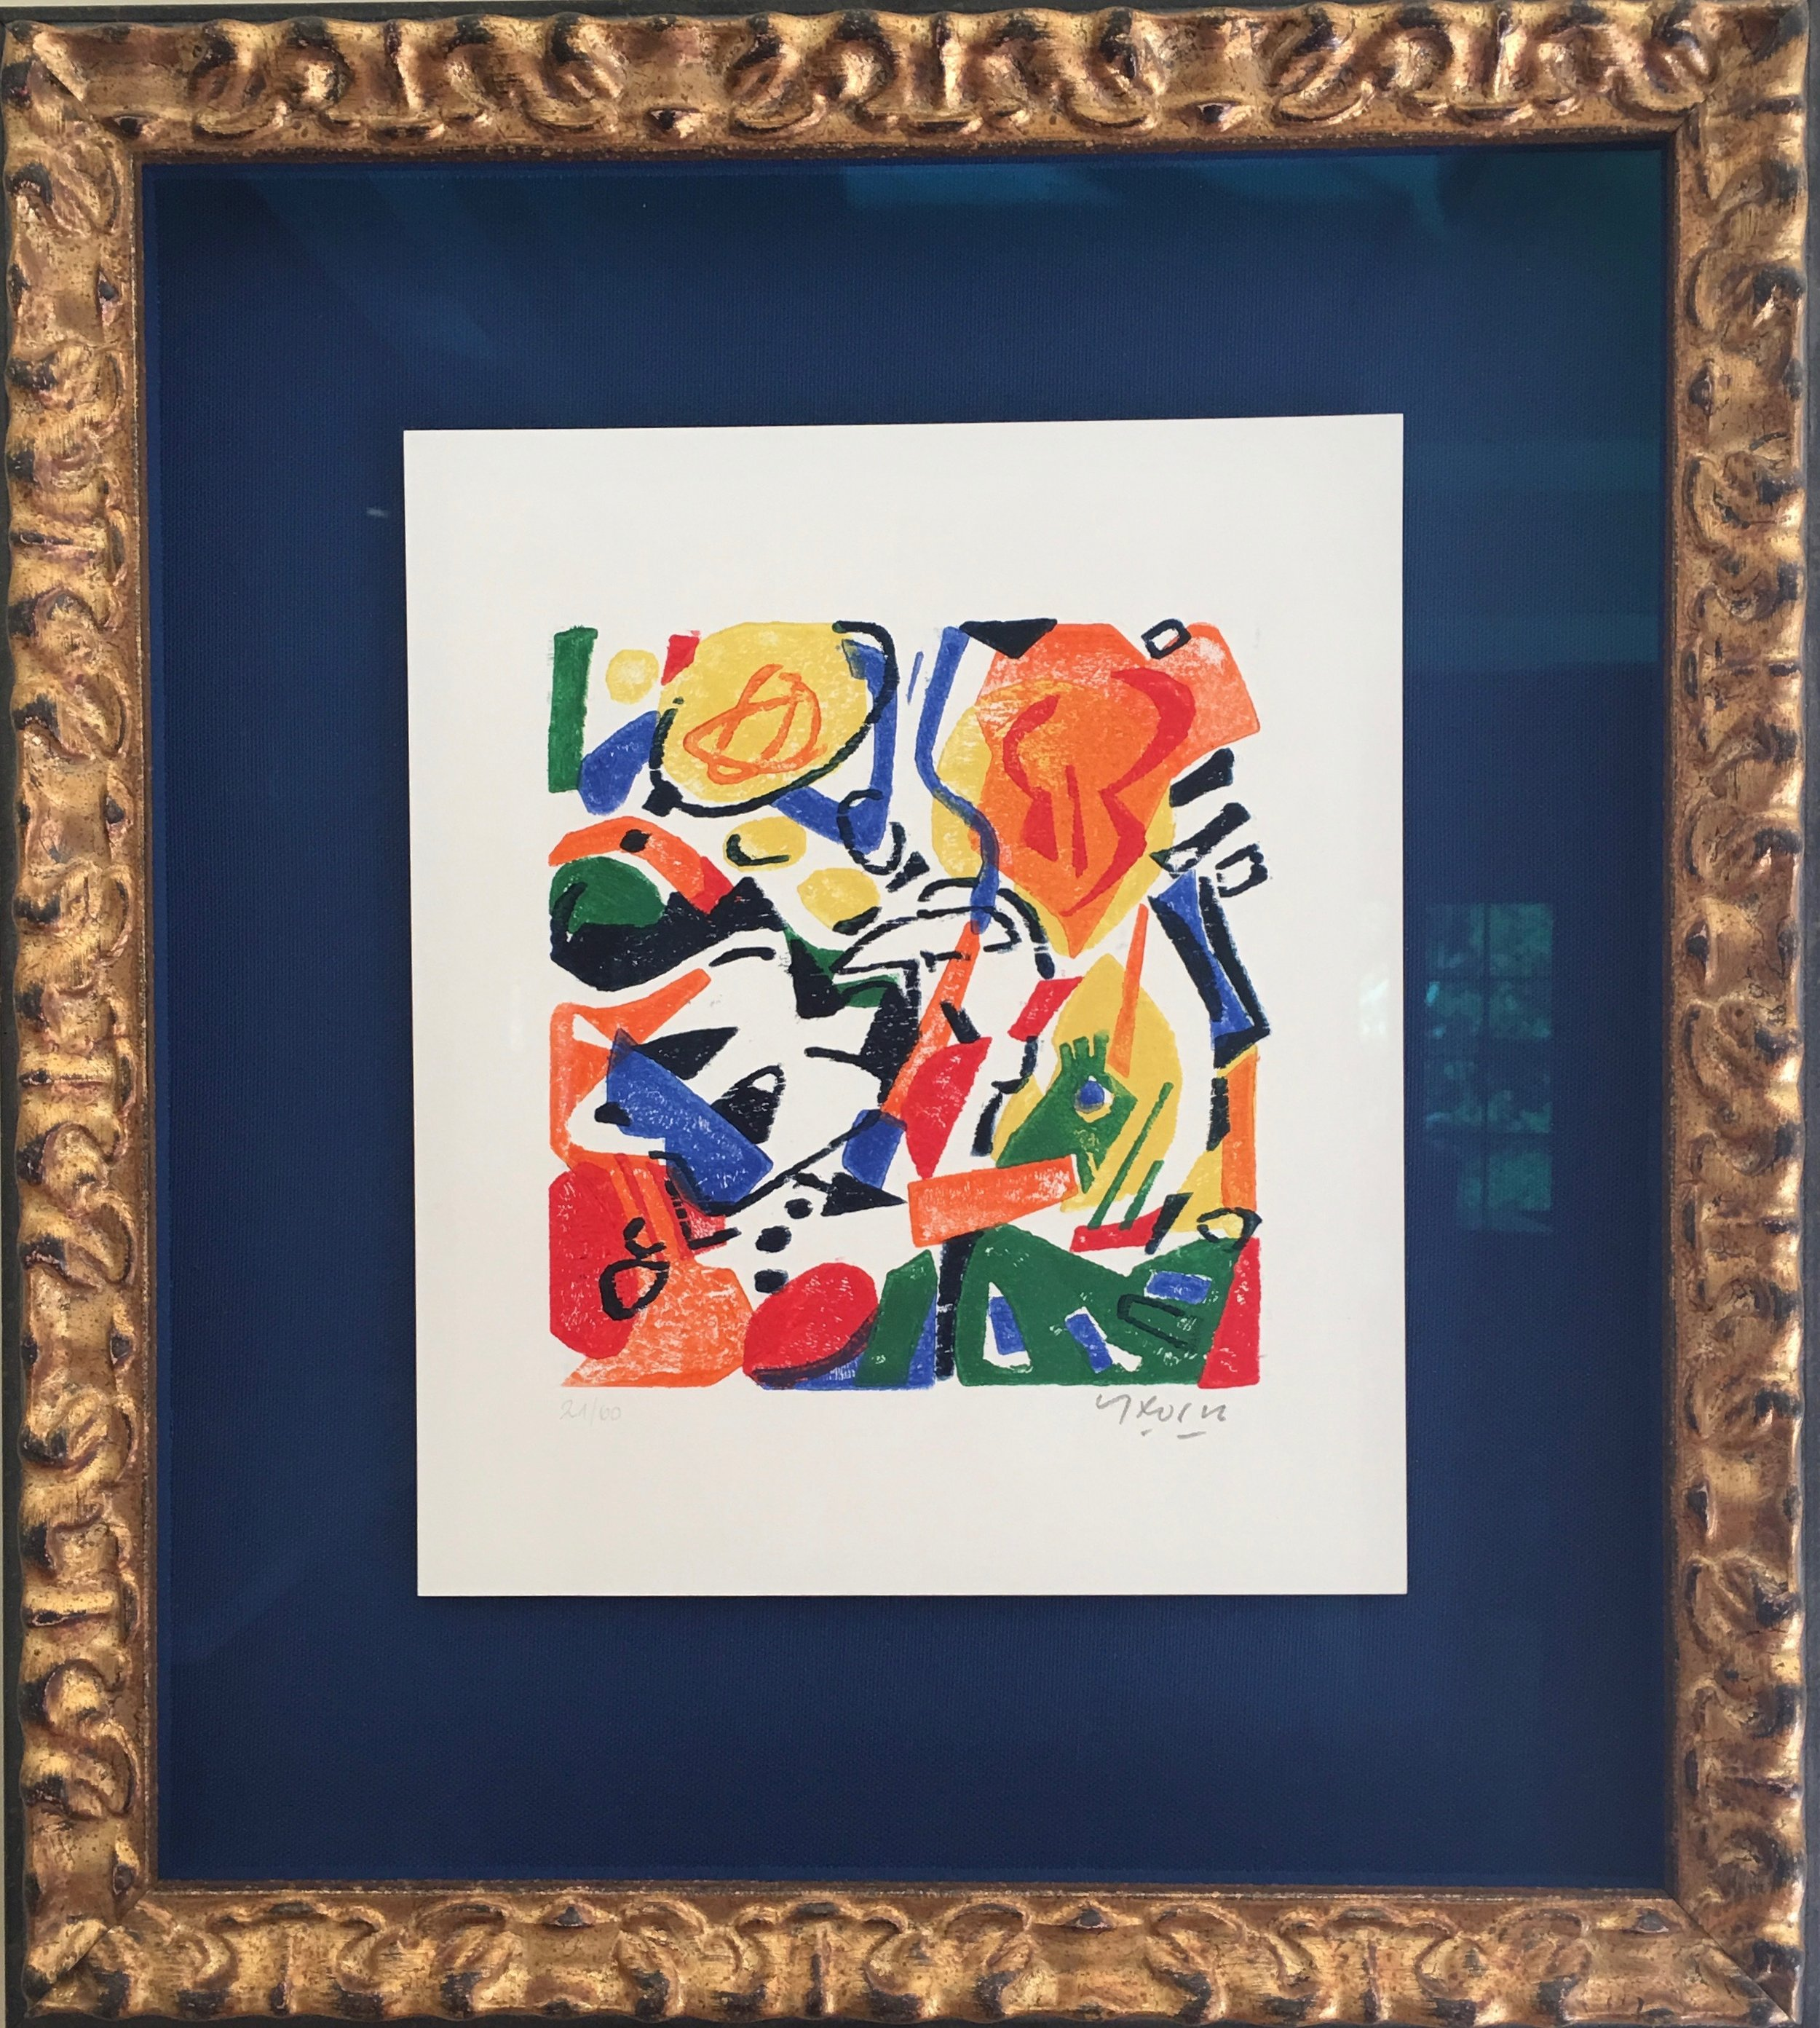 Contemporary piece by Cristian Korn in a gilded frame.